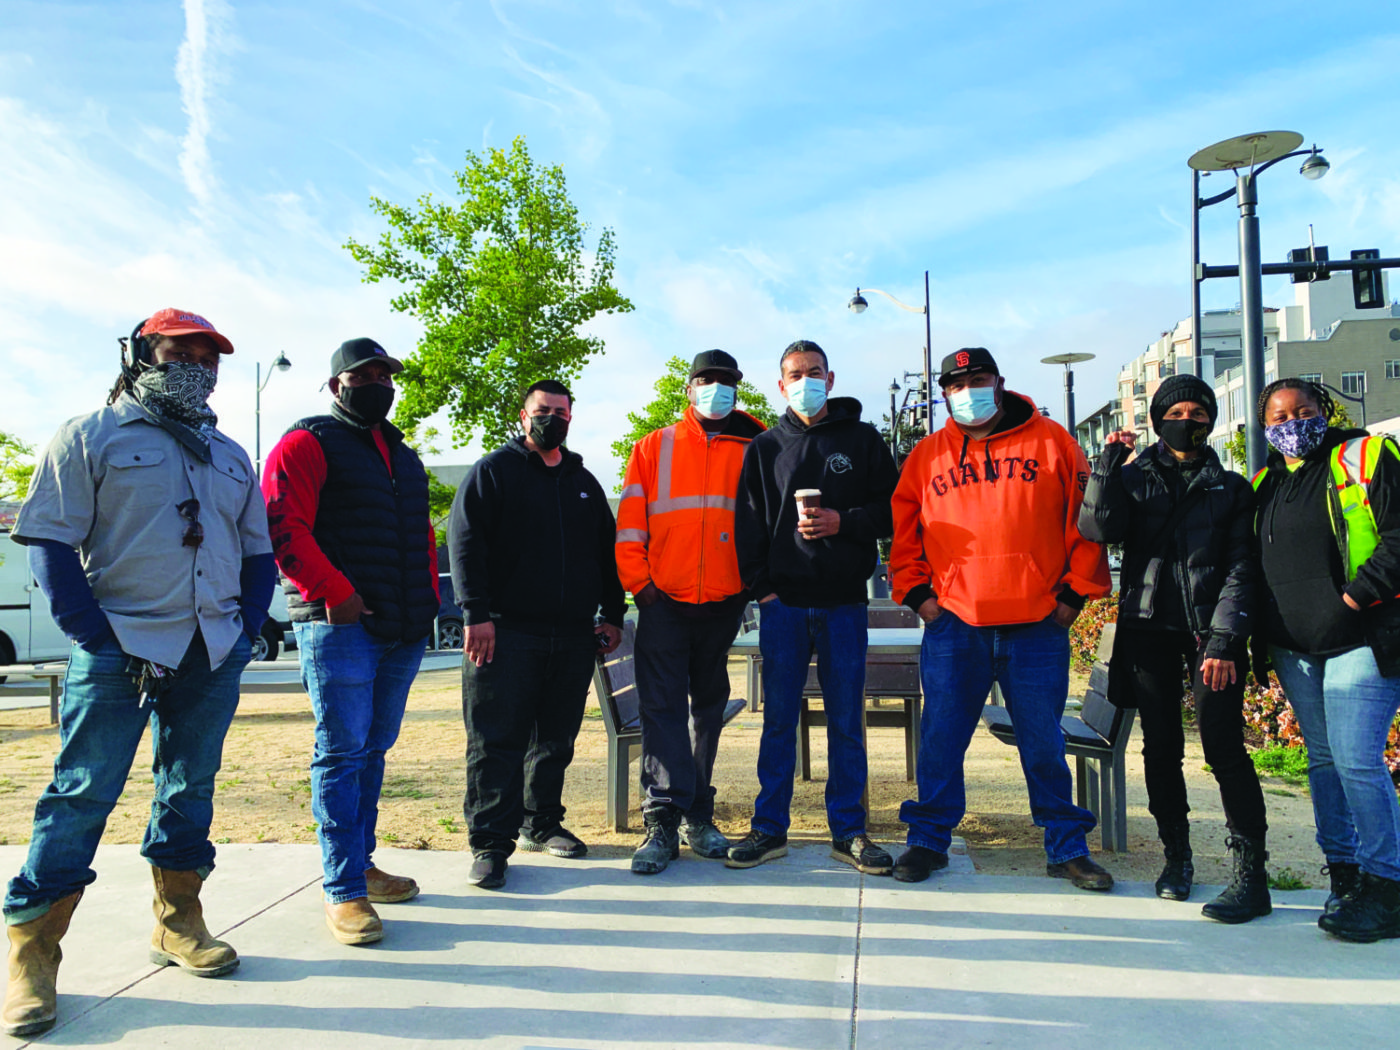 Group-photo-with-Nube-Brown-UCSF-job-site-shutdown-043021-by-Griffin-1400x1050, Black truckers shut down multi-million-dollar UCSF job site for 4.5 hours, Local News & Views